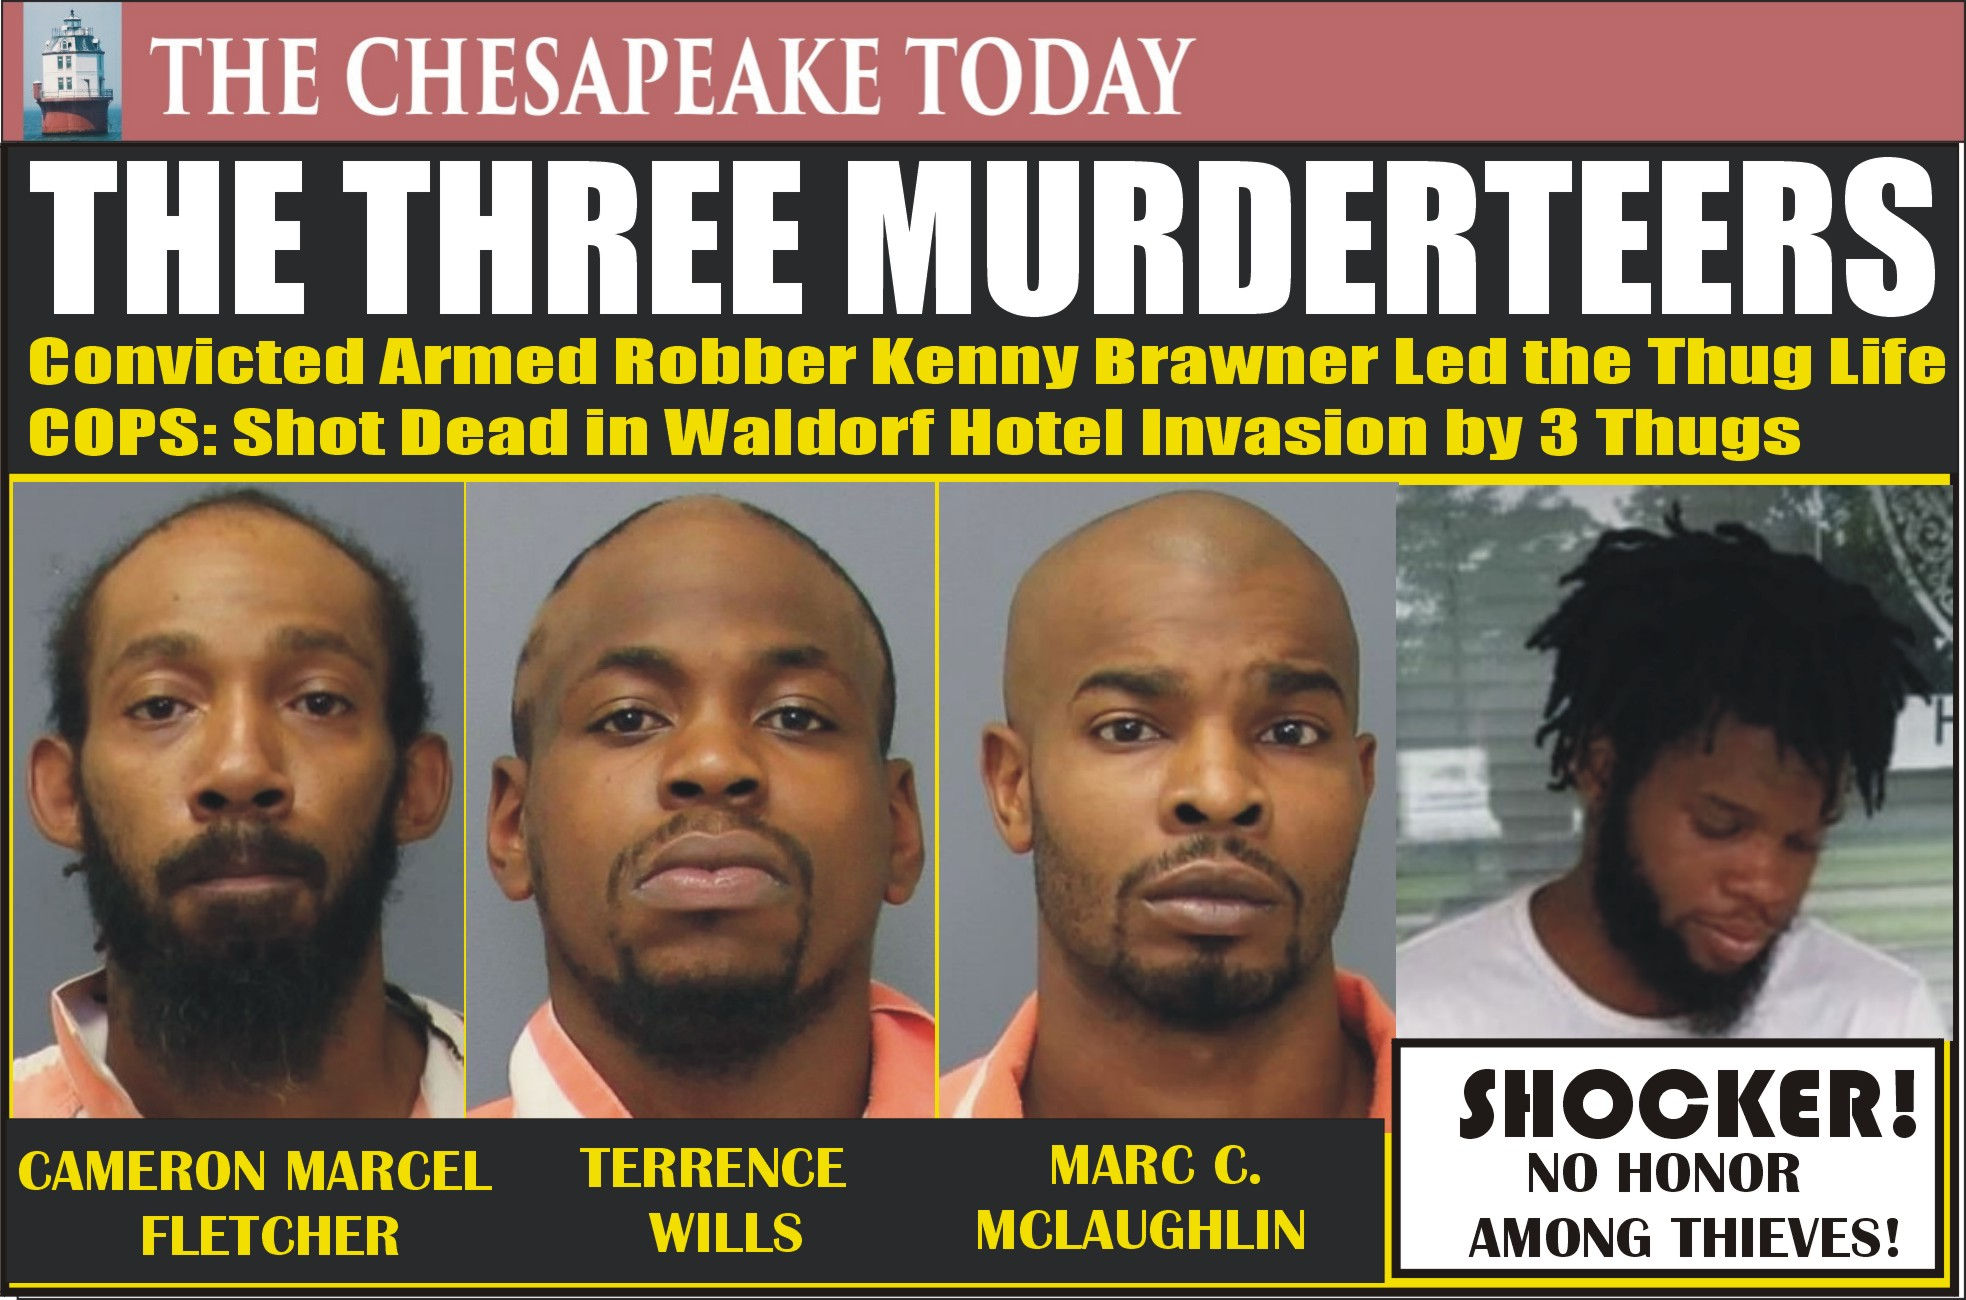 MURDER USA: THE THREE MURDERTEERS REUNITED BEHIND BARS! Cameron Fletcher, Terrence Wills & Marc Carlyle Charged with Murder of Kenny Brawner